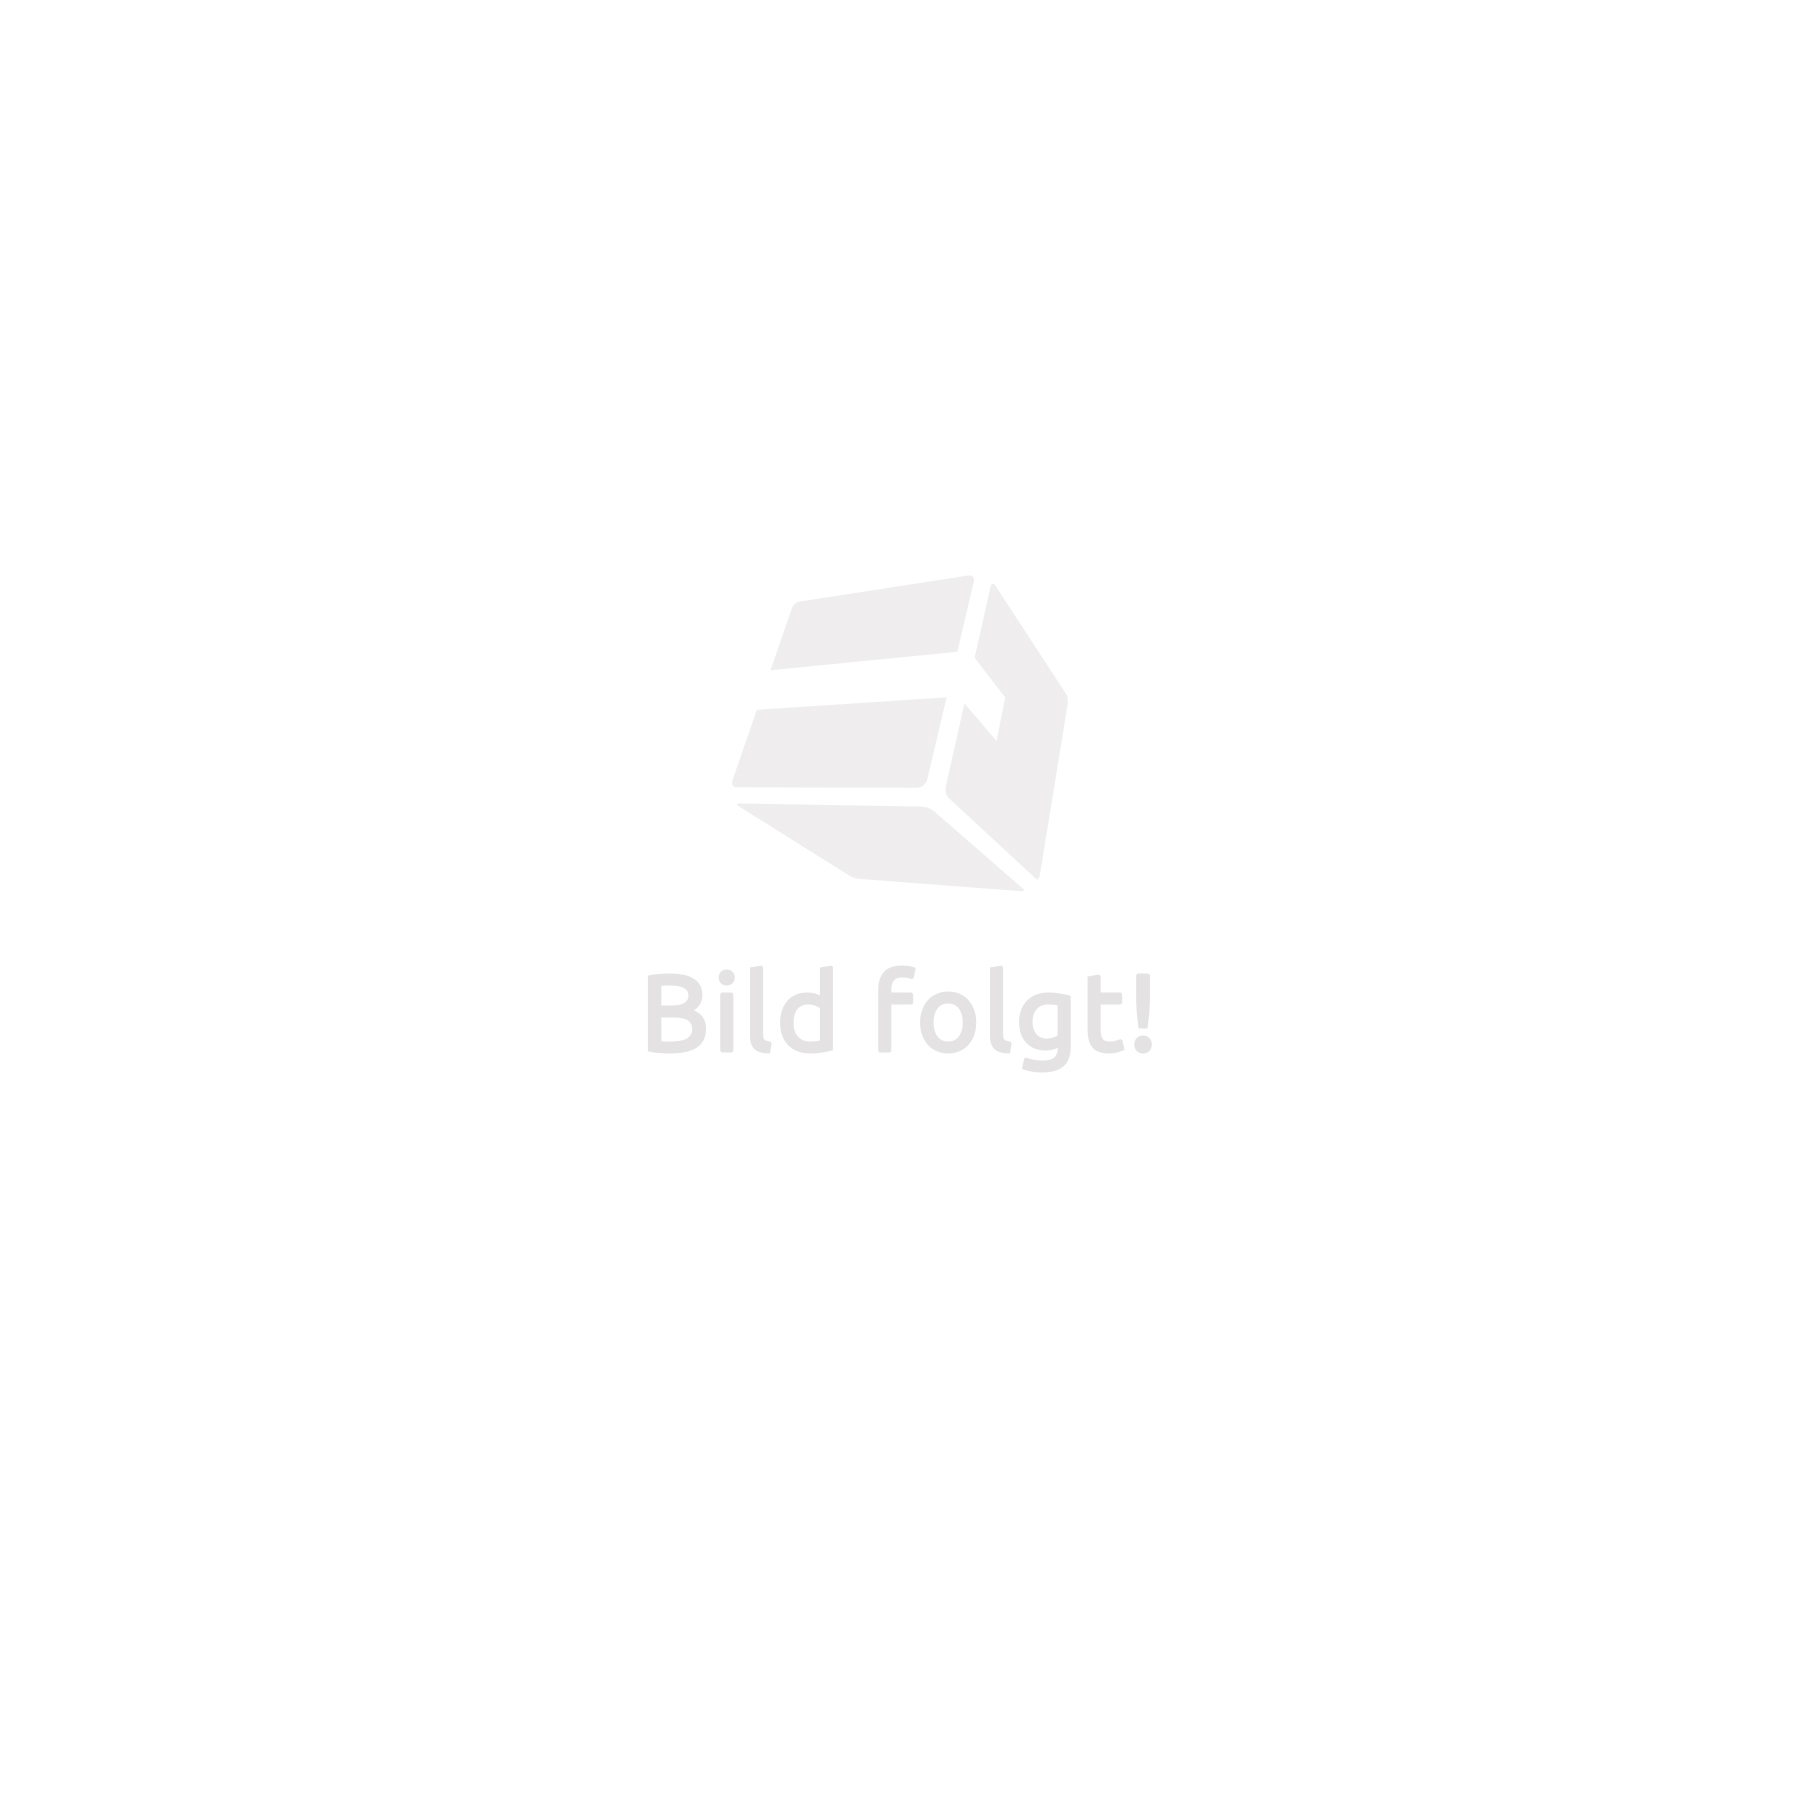 Sawhorse type 2 metal folding